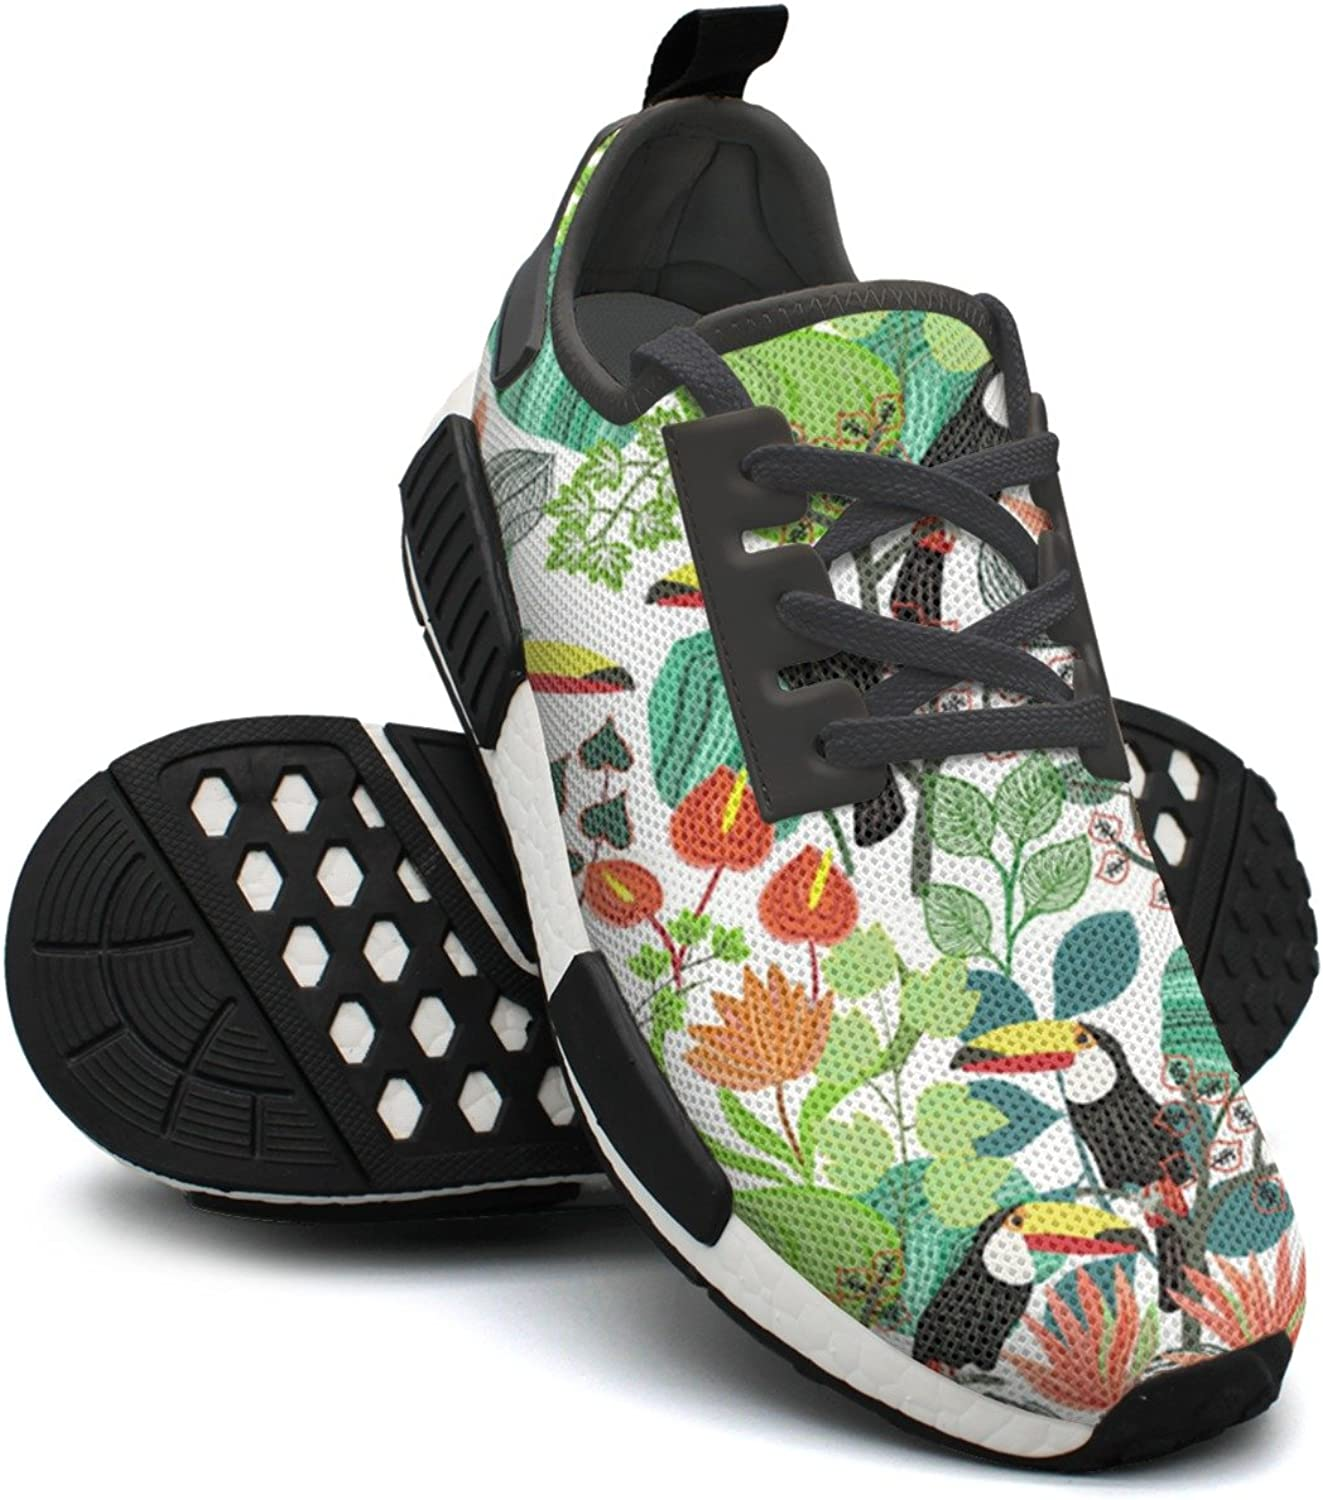 Ktyyuwwww Women colorful Top Tropical Jungle Toucan Paradisio Palms Navy Sports Running shoes